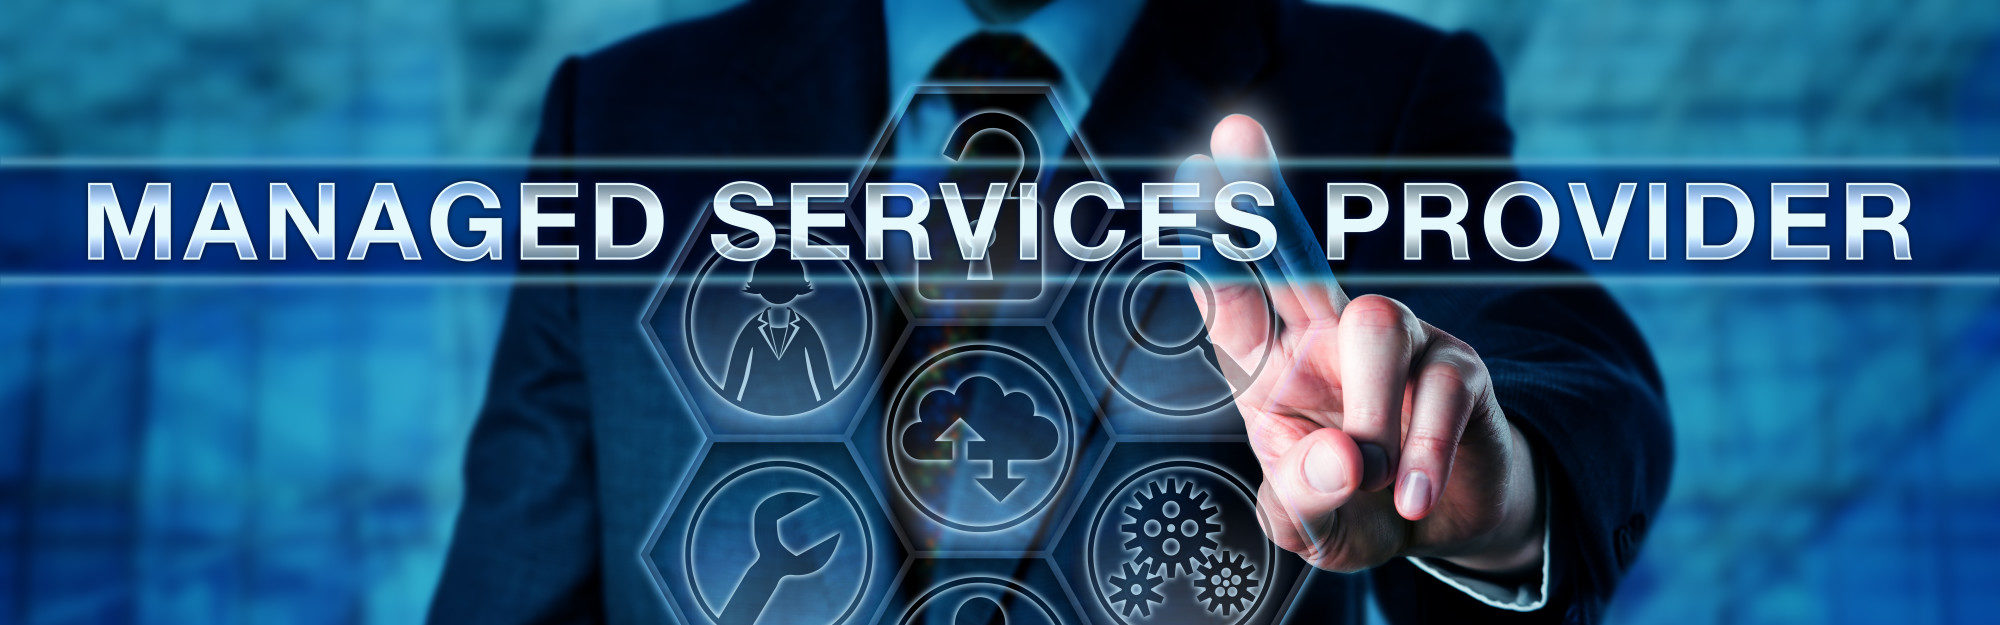 What Are Managed Service Providers and How Can They Help?